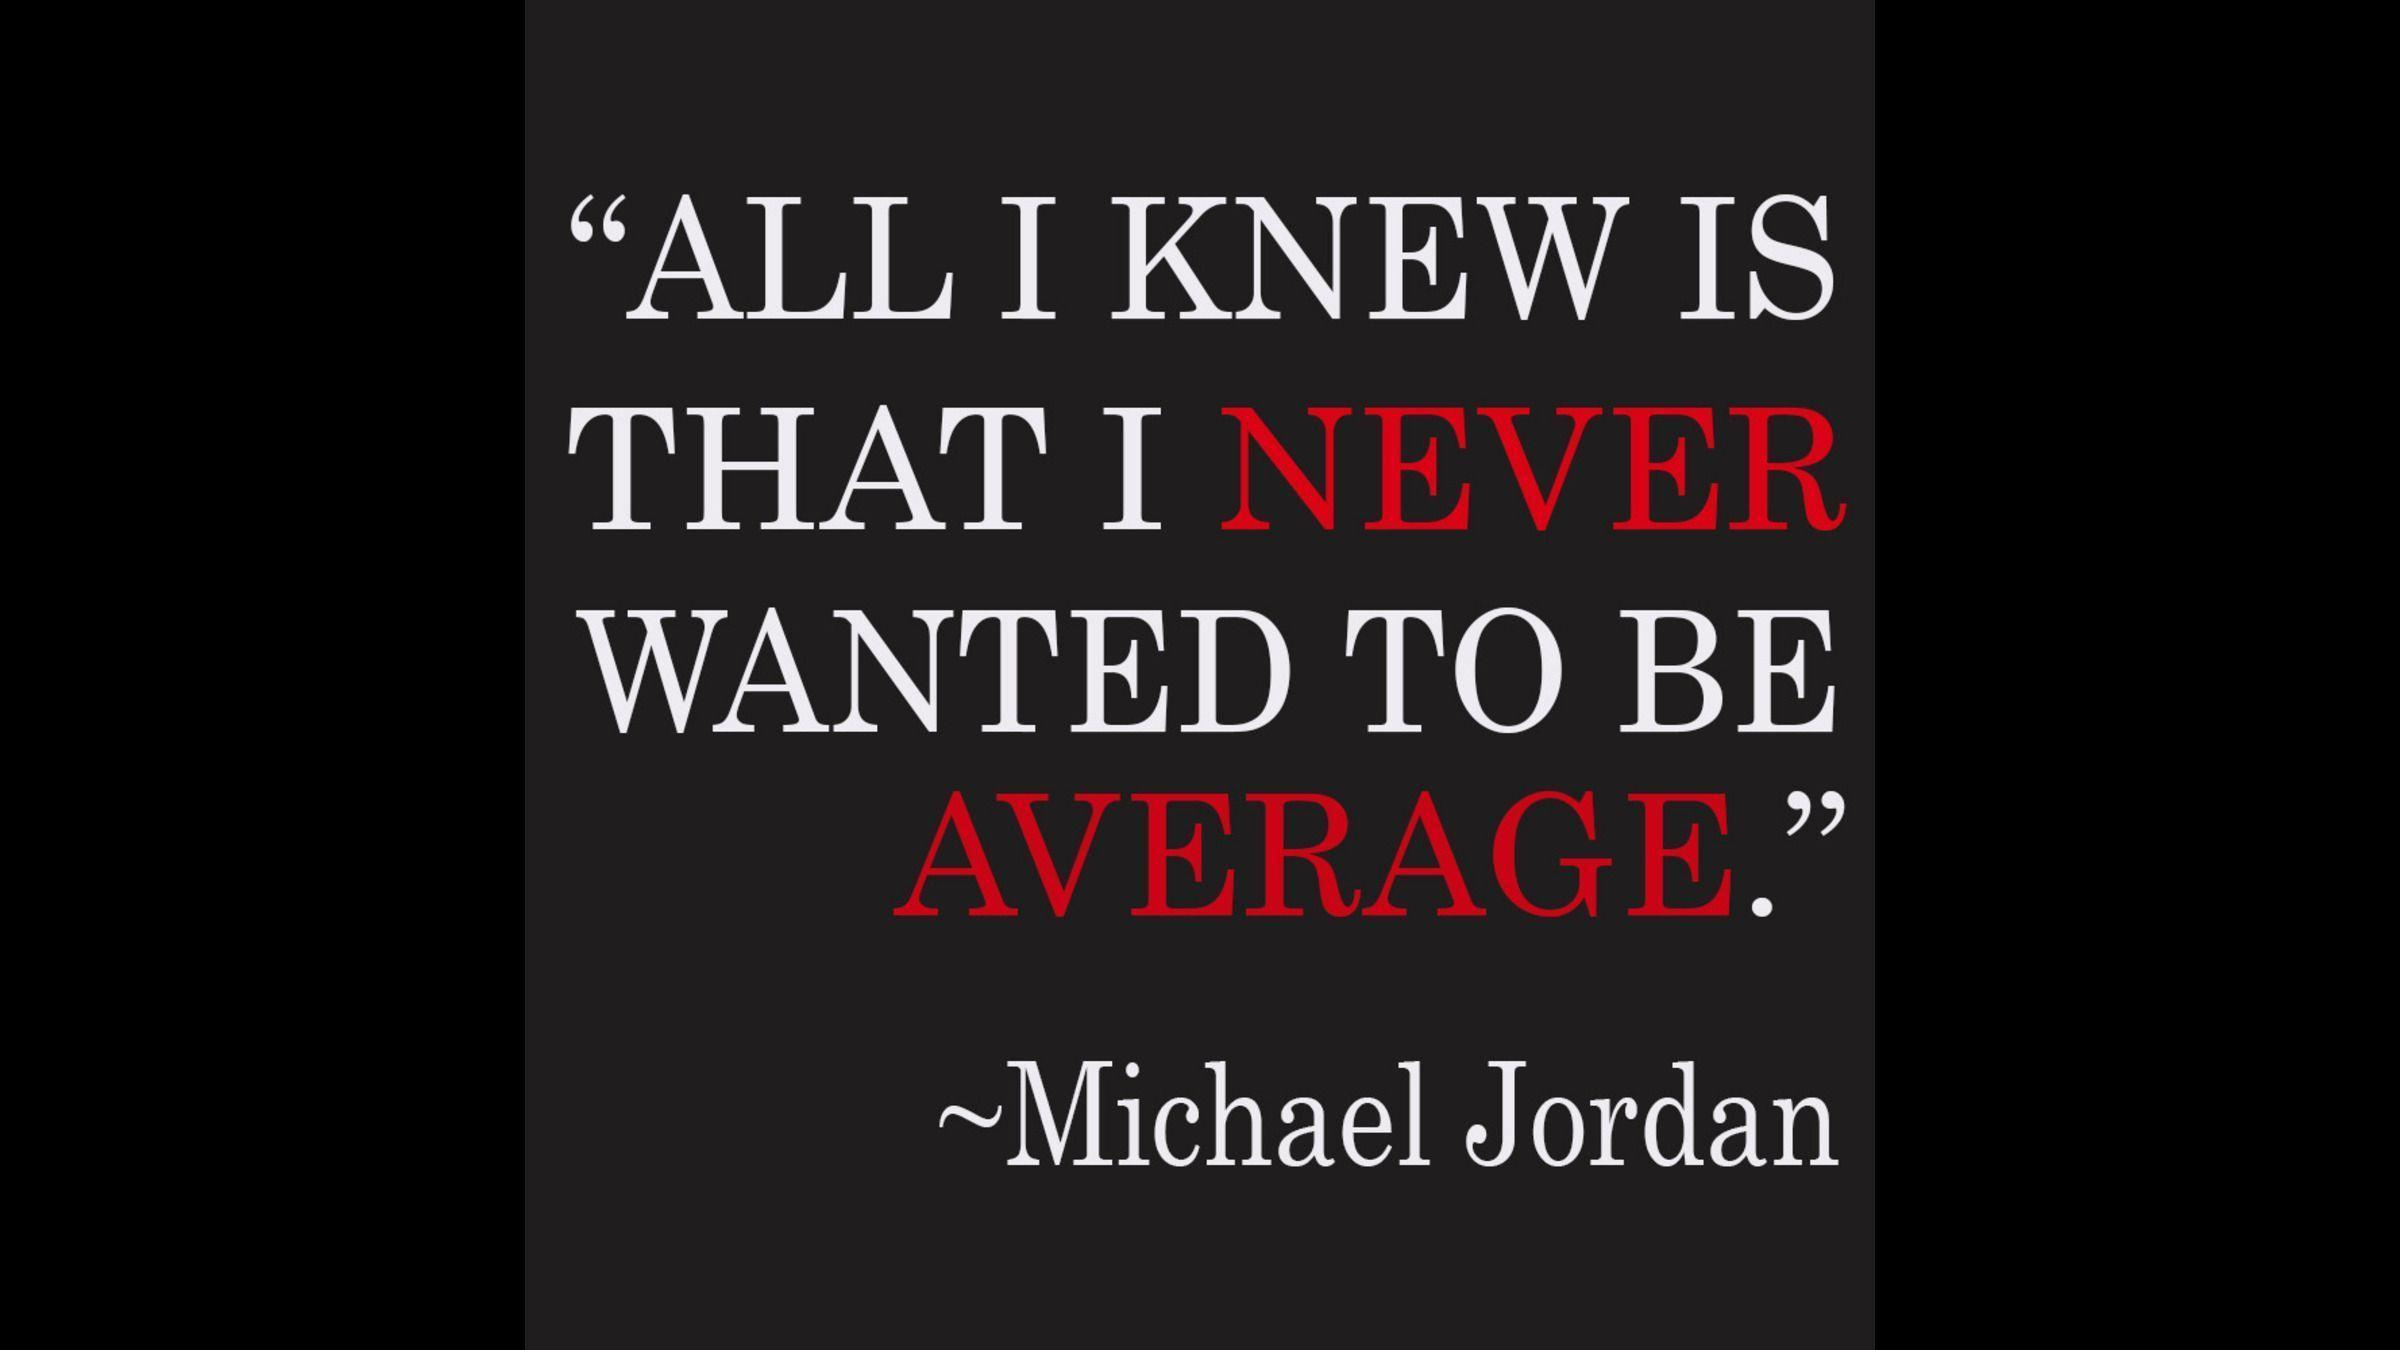 Michael Jordan Quote Pictures from our First page